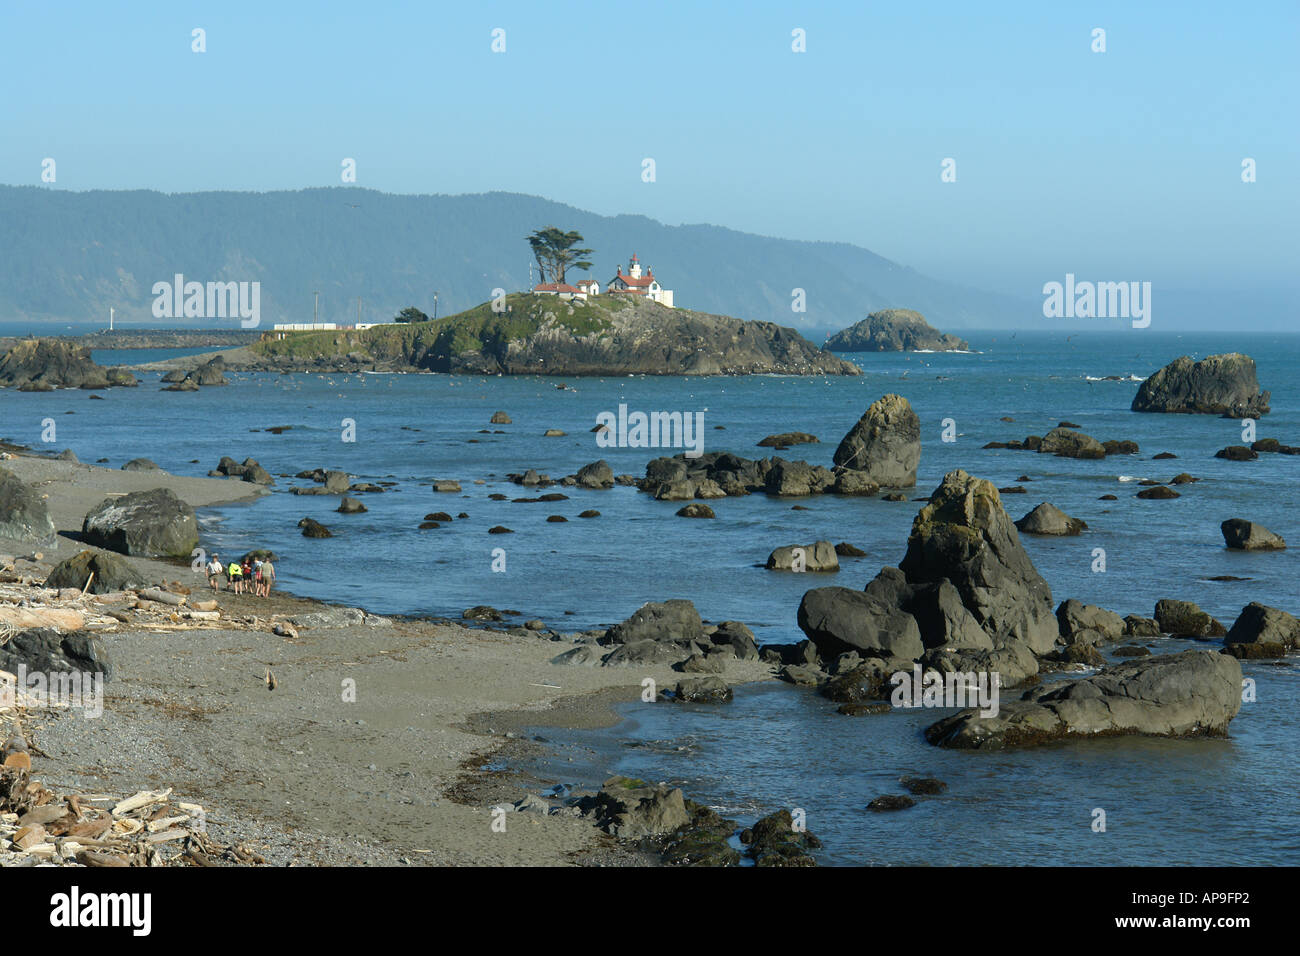 AJD51247, Crescent City, CA, California, Pacific Ocean, Battery Point Lighthouse ca 1856, Battery Point Island Stock Photo